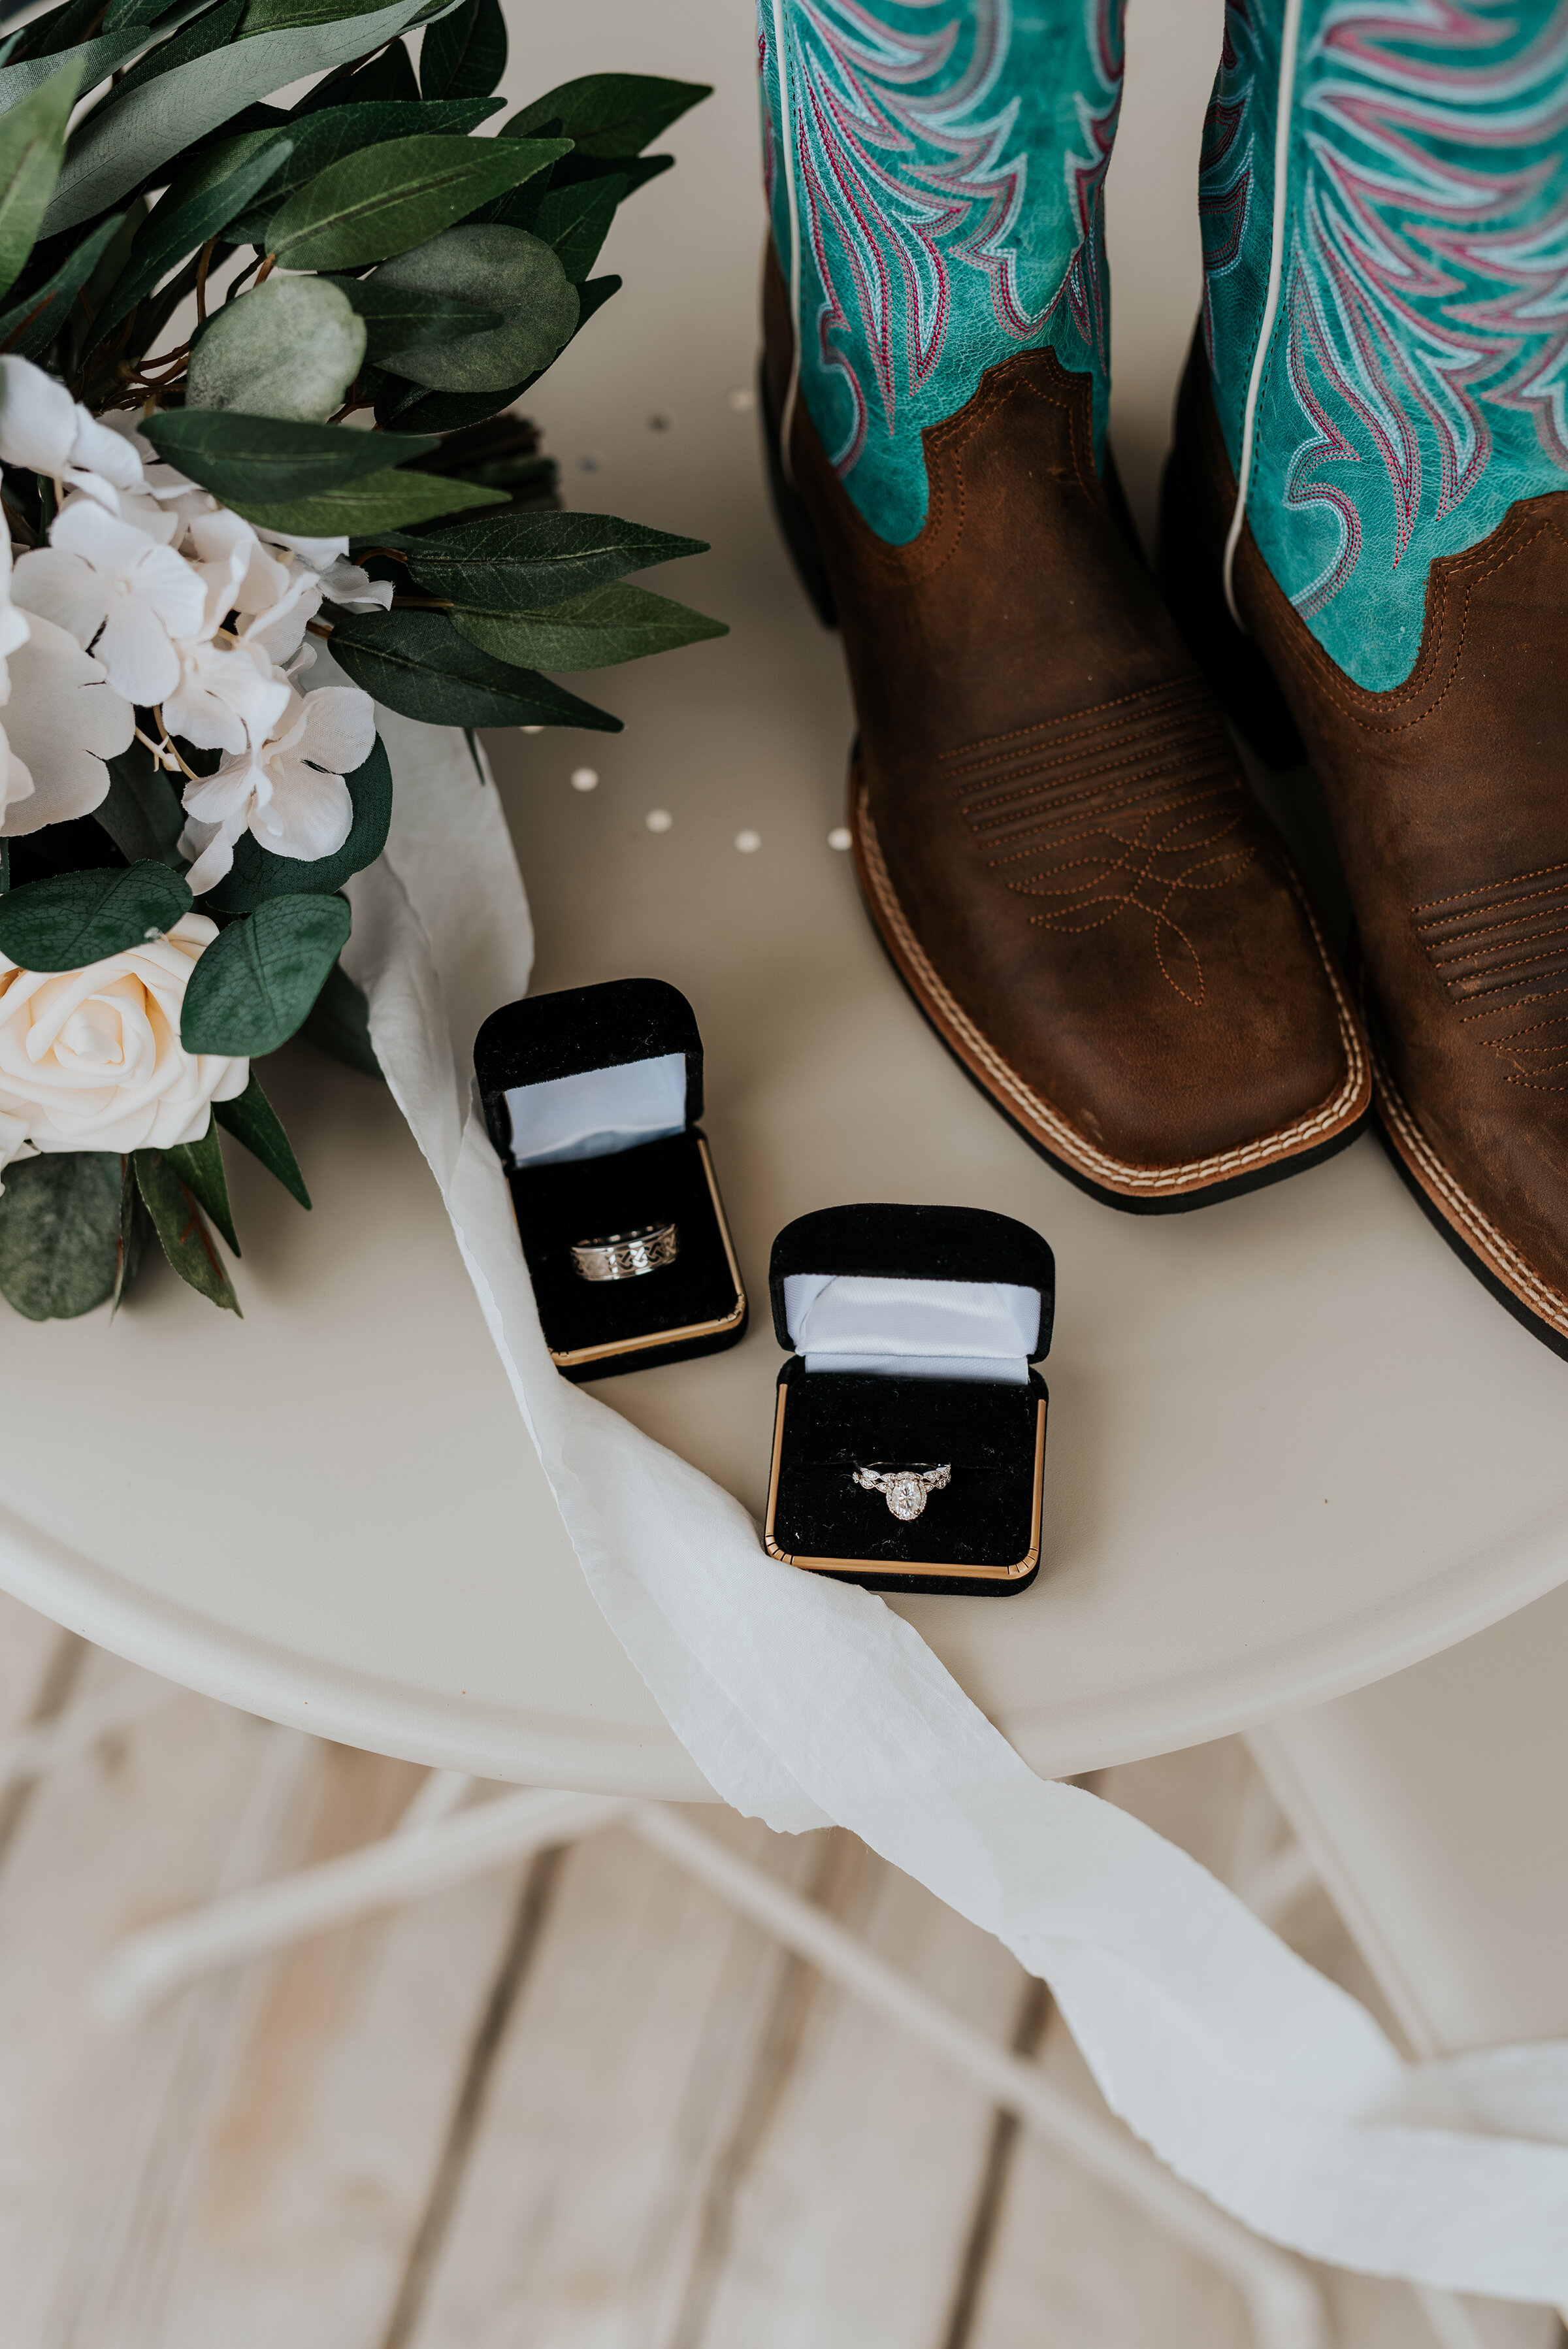 Accessories from this western rustic wedding day included cowgirl boots, a beautiful set of white roses and the bride and grooms wedding rings. Ephraim Utah photography wedding rings outdoor location western inspired rustic Airbnb photo aesthetic #ephraimutah #utahphotography #weddingdayphotography #gettingmarried #rusticwedding #utahwedding #westernstyle #weddingphotoshoot #weddingrings